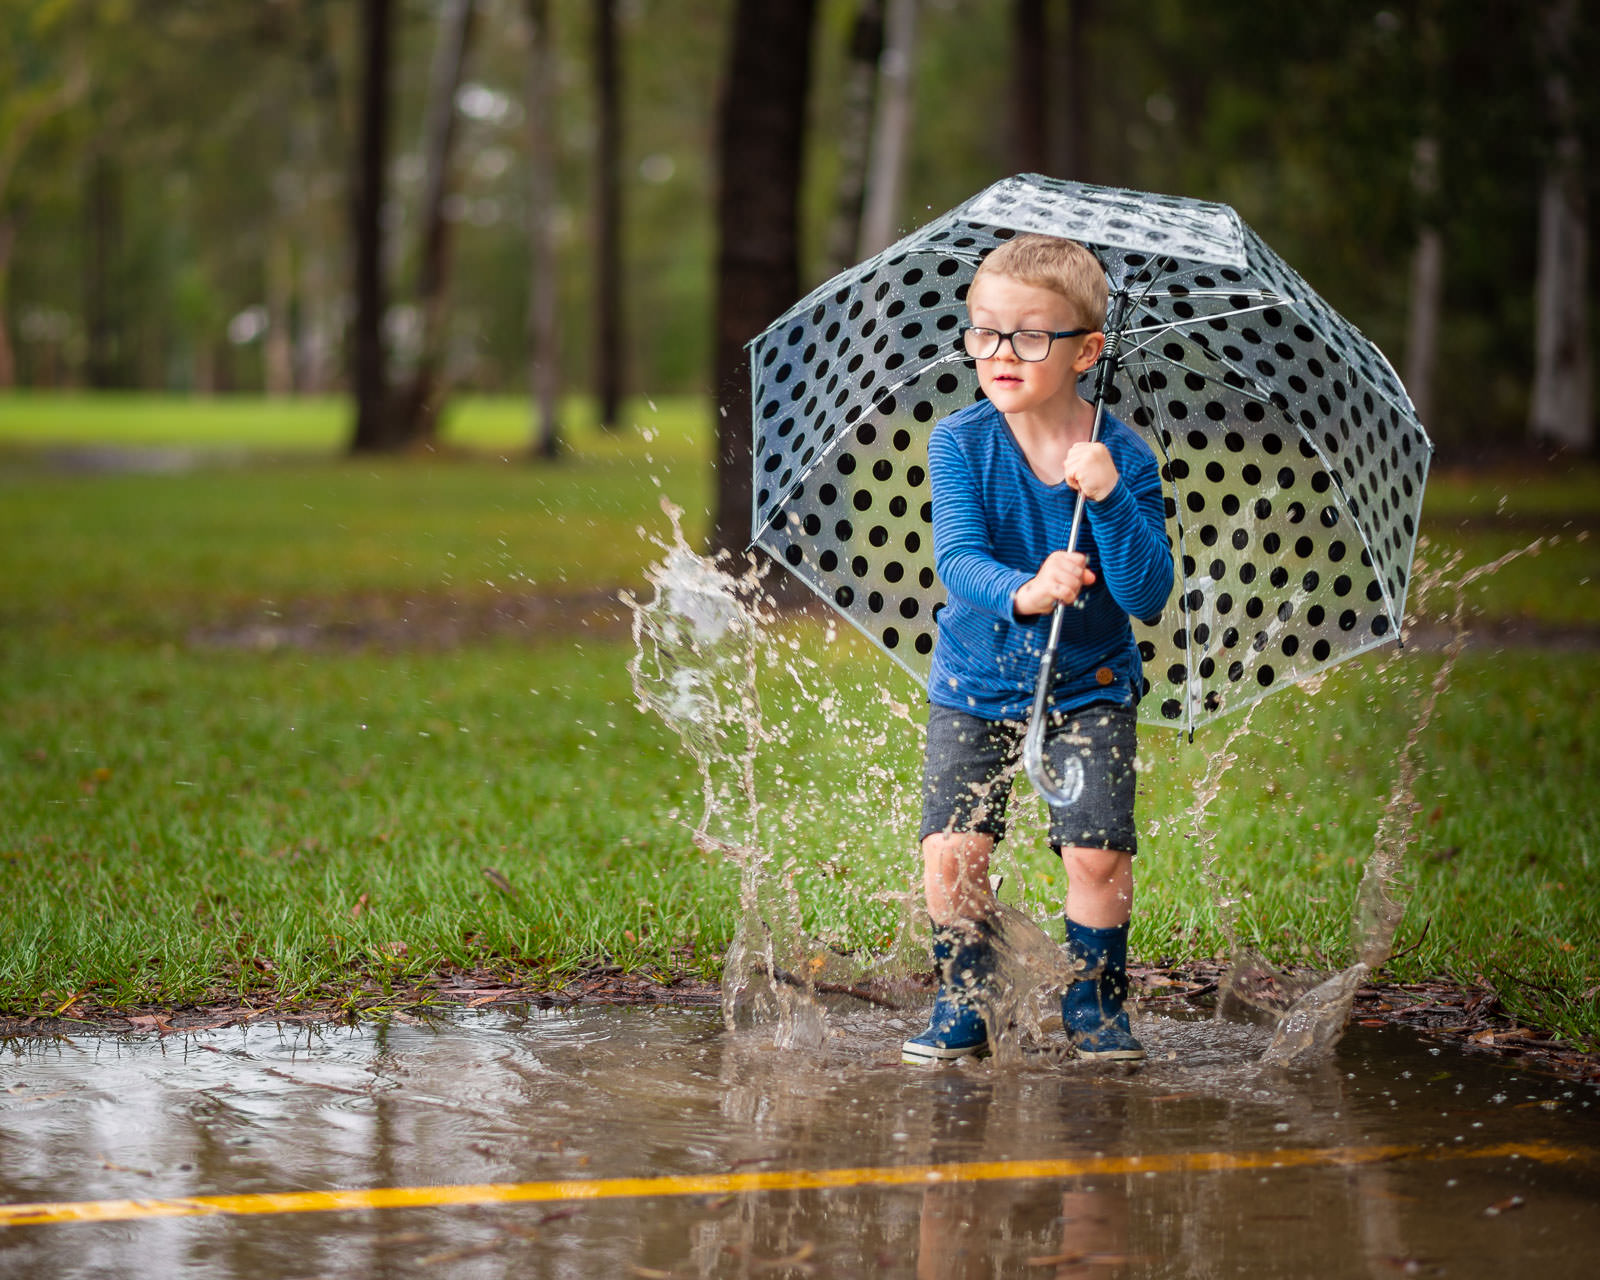 Young boy jumping and splashing in puddles during outdoor portrait photos | Caboolture family photography